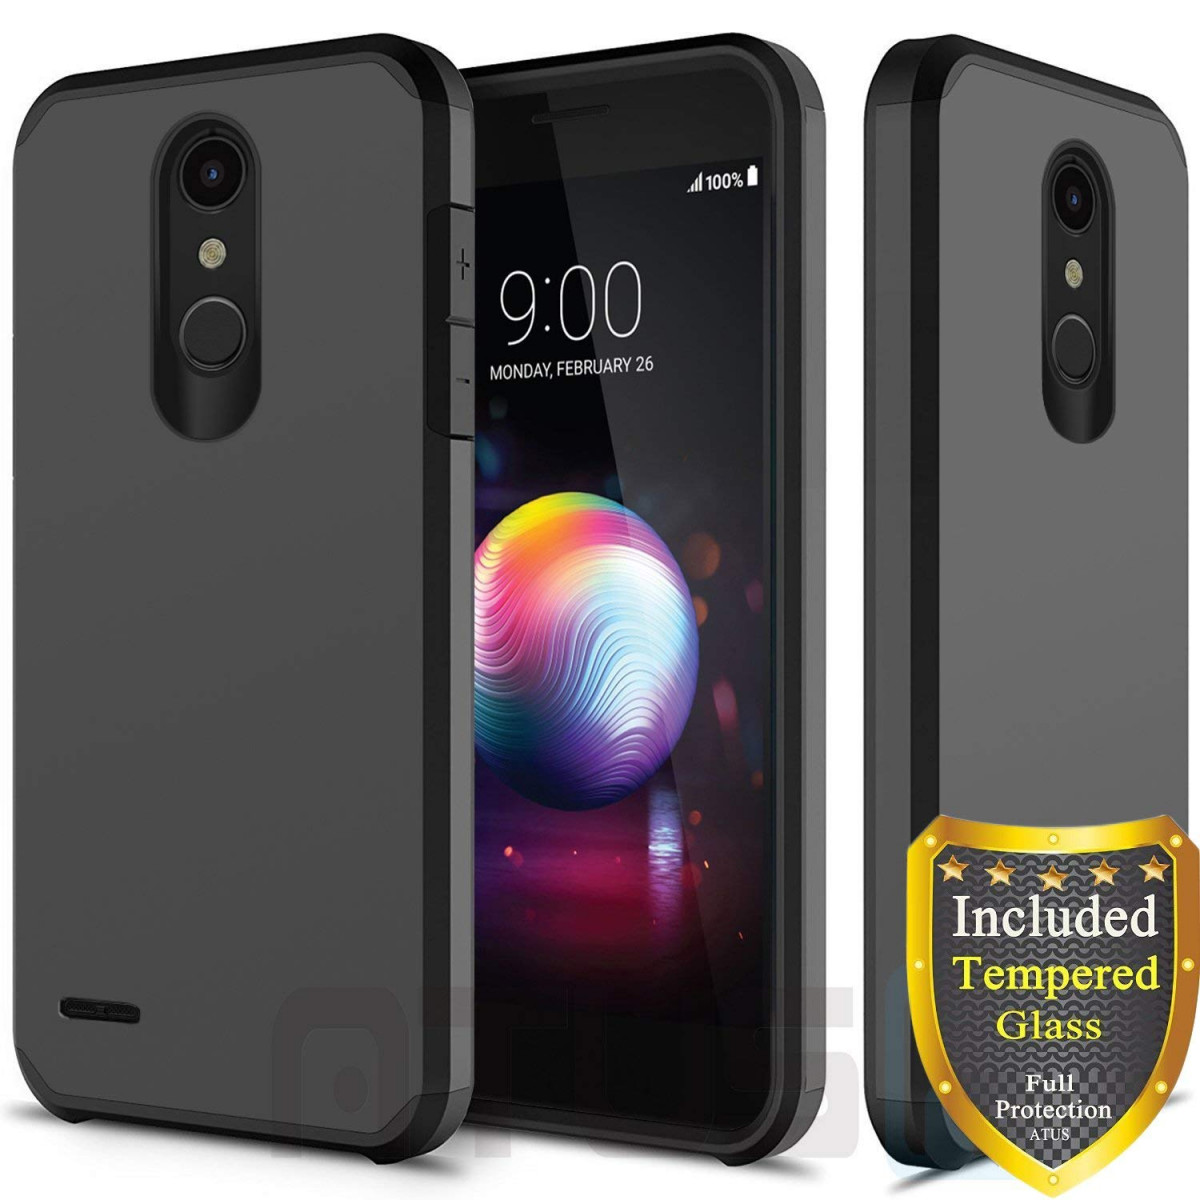 new styles c5bee f0d0f LG K30 Case, LG Harmony 2 Case, LG Phoenix Plus Case, LG Premier Pro Case,  LG K10 2018 Case, with Full Cover Tempered Glass Screen Protector, ATUS ...